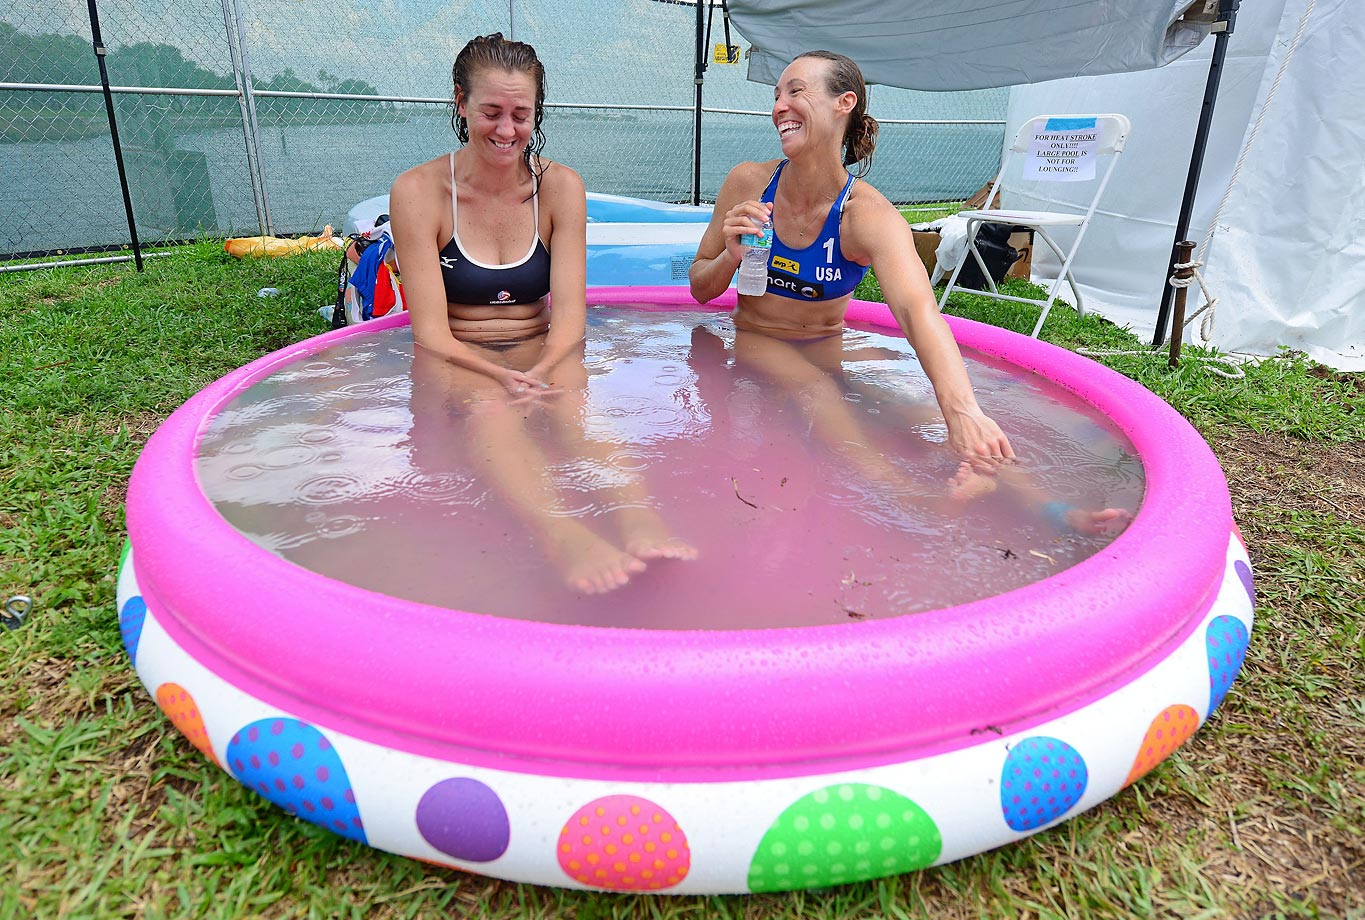 Jennifer Fopma and Lauren Fendrick sit in a pool to bring down their body temperatures in the 100 degree heat and 80 percent humidity during the FIVB Beach Volleyball World Tour in St. Petersburg, Fla.